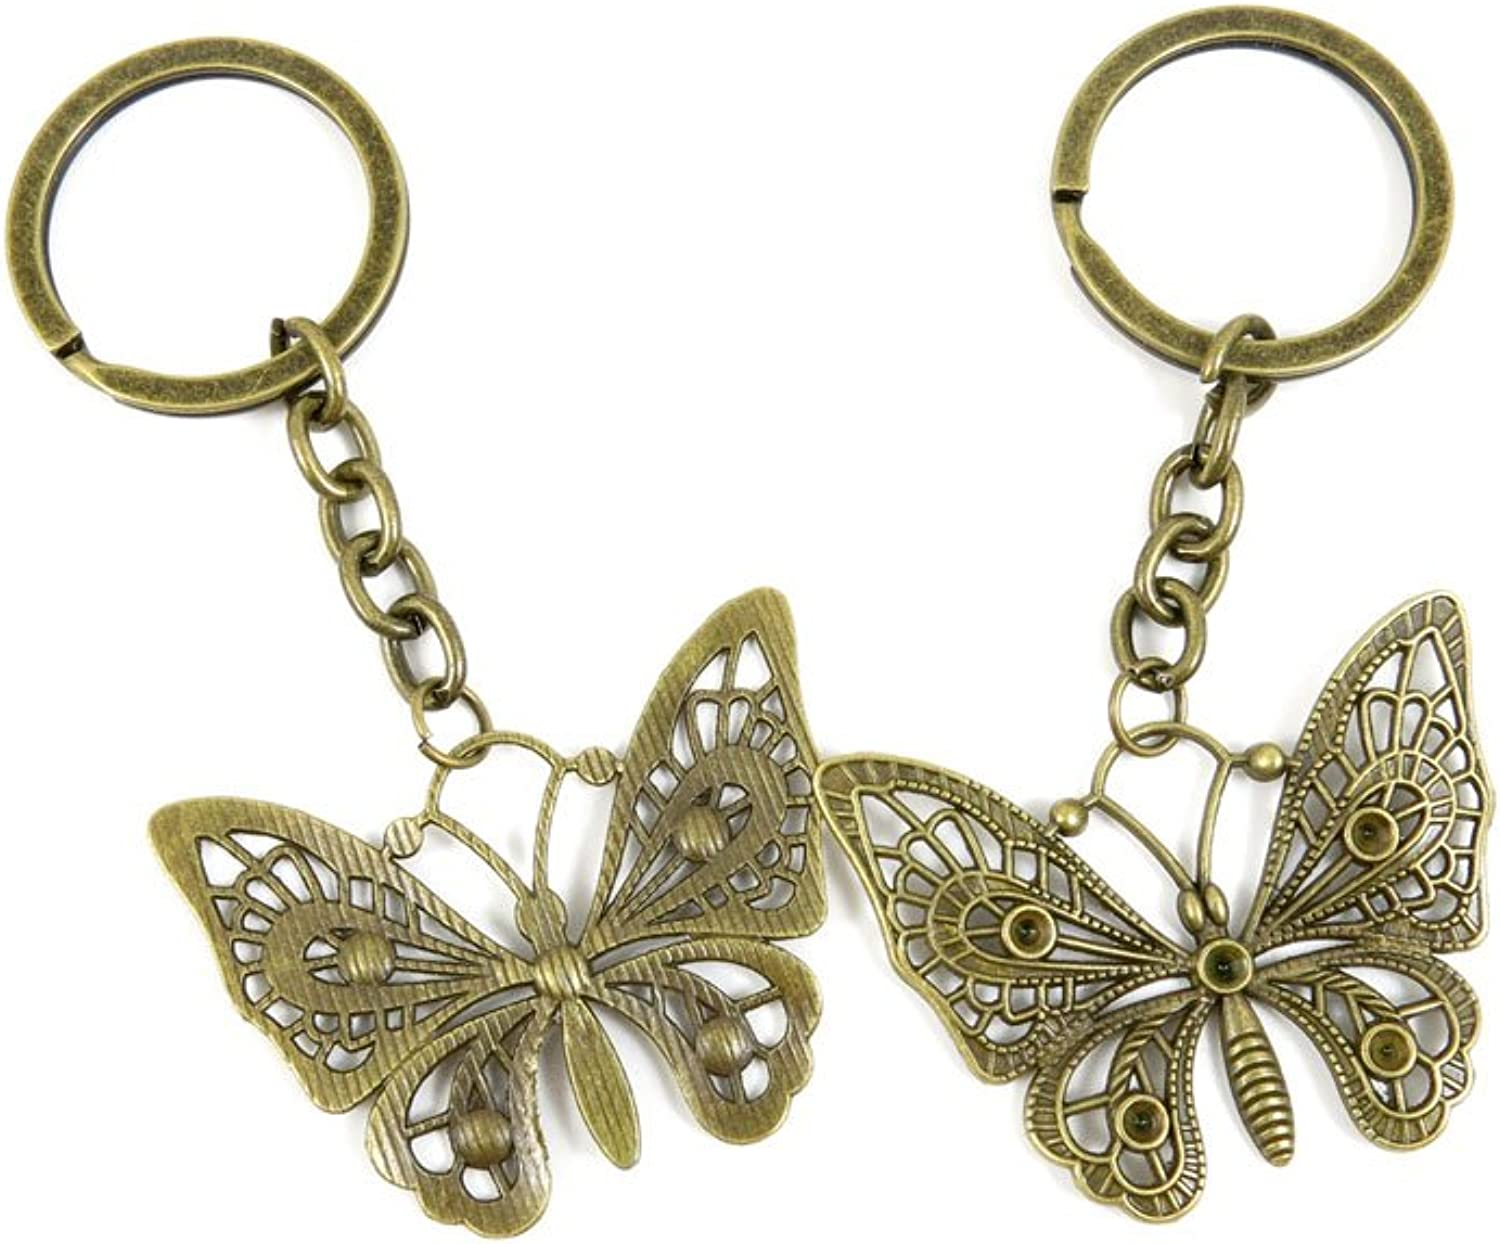 130 Pieces Fashion Jewelry Keyring Keychain Door Car Key Tag Ring Chain Supplier Supply Wholesale Bulk Lots B1SY4 Butterfly